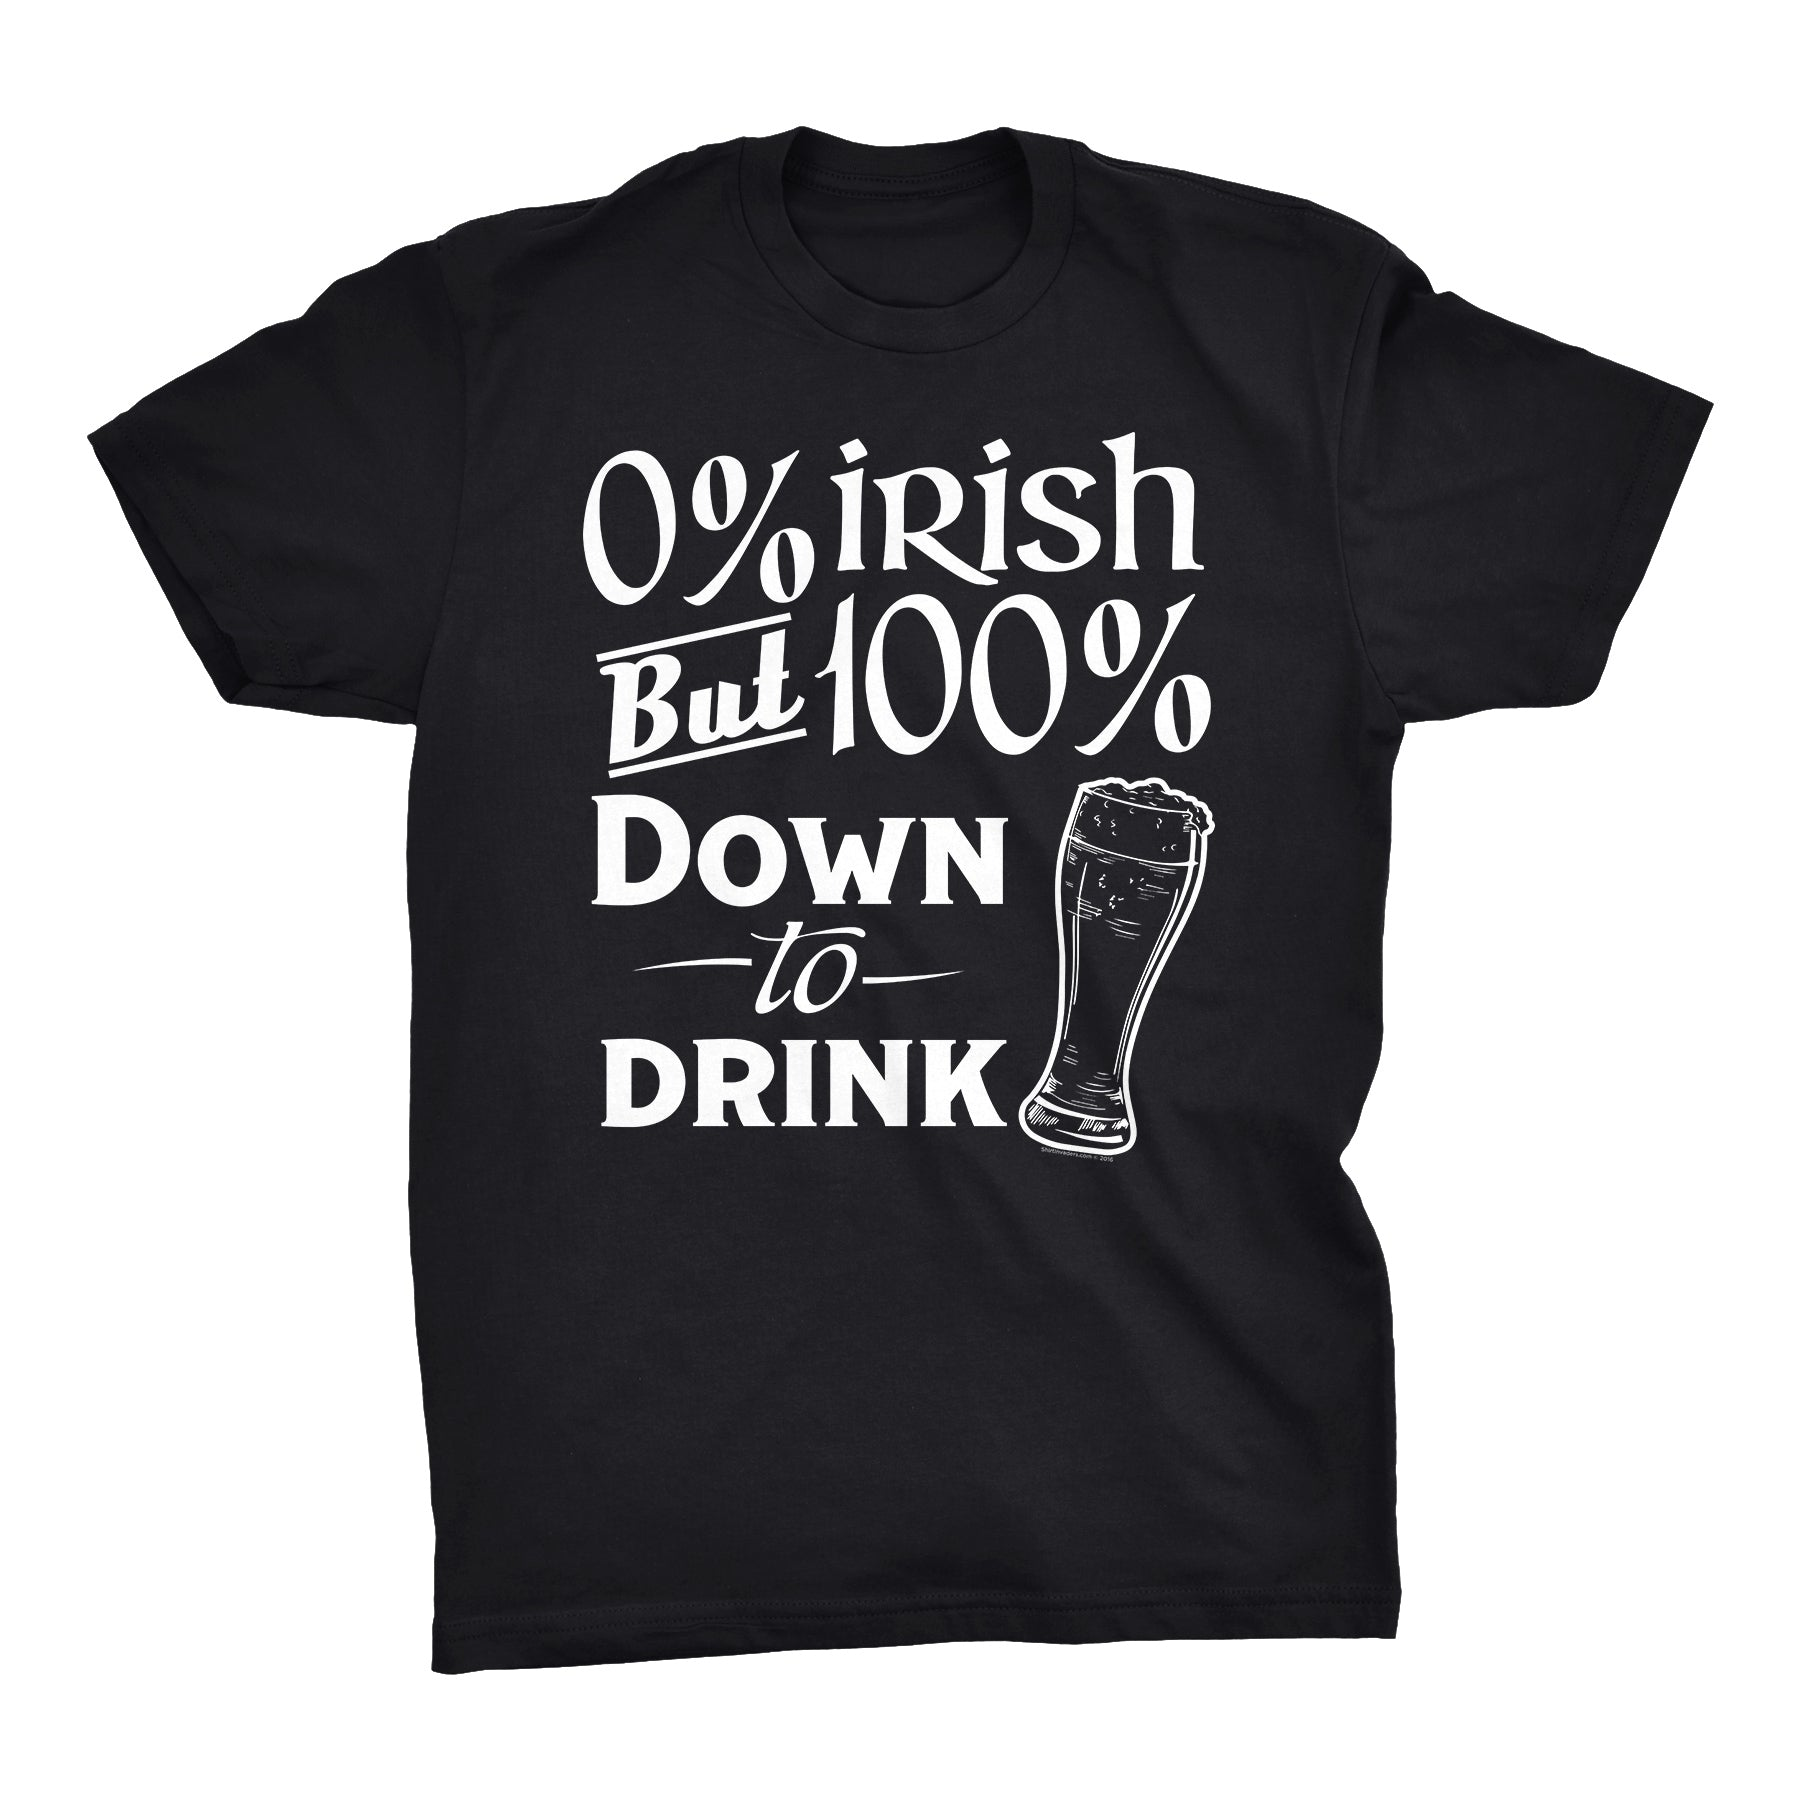 O% IRISH But 100% Down To Drink - 001